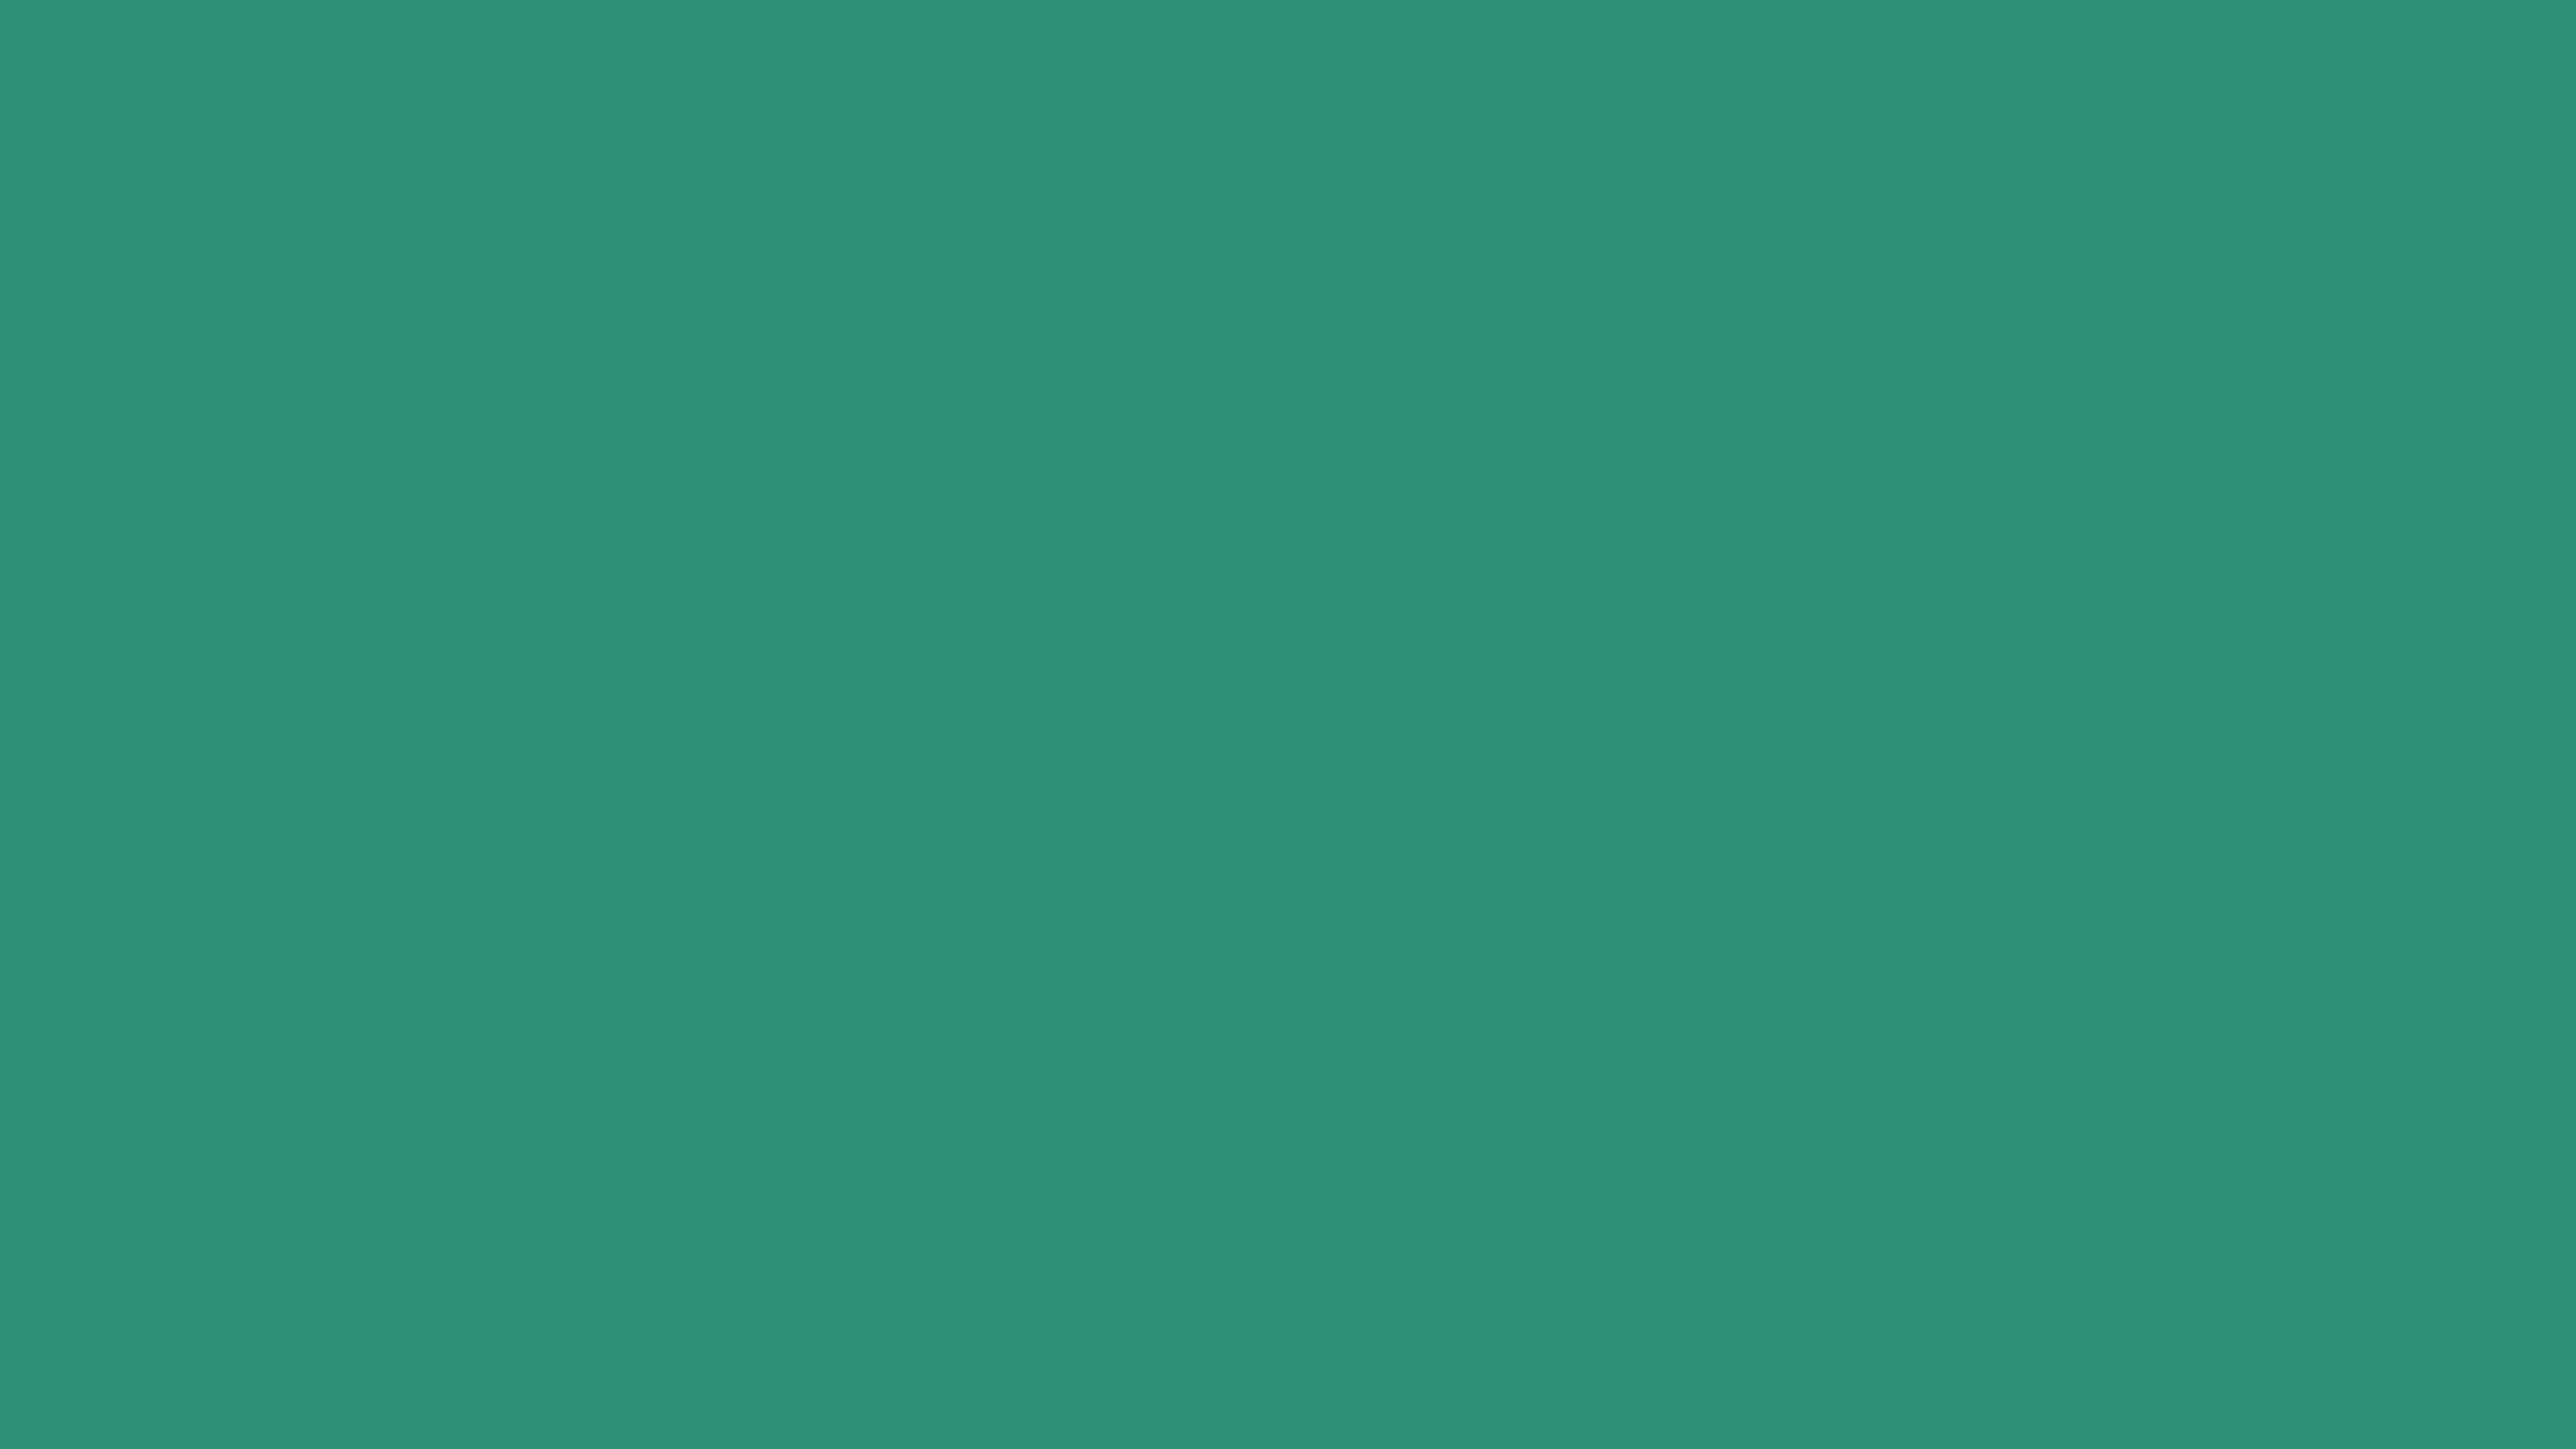 3840x2160 Illuminating Emerald Solid Color Background